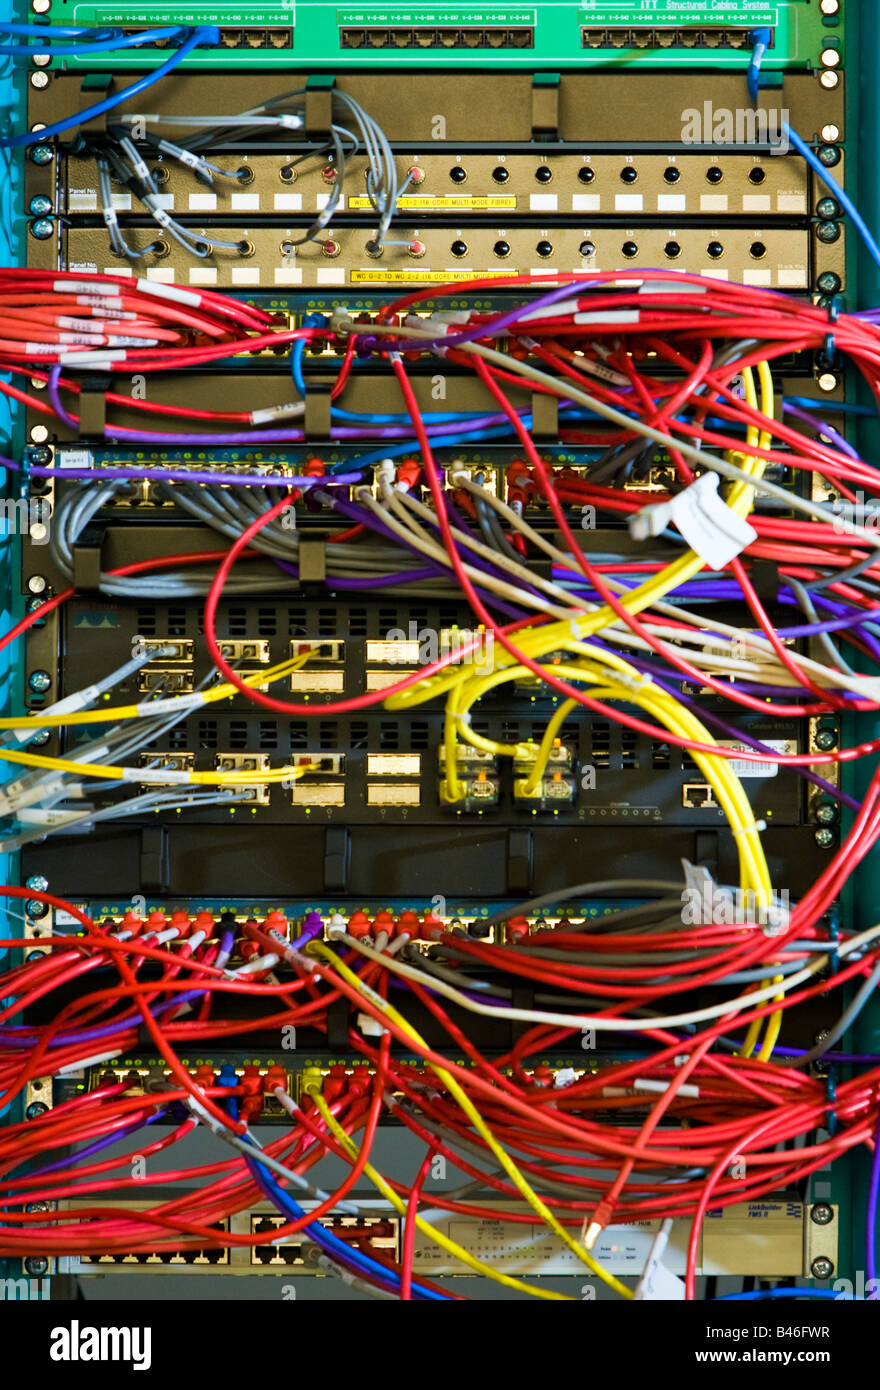 hight resolution of computer cables ethernet network rack server connection stock image